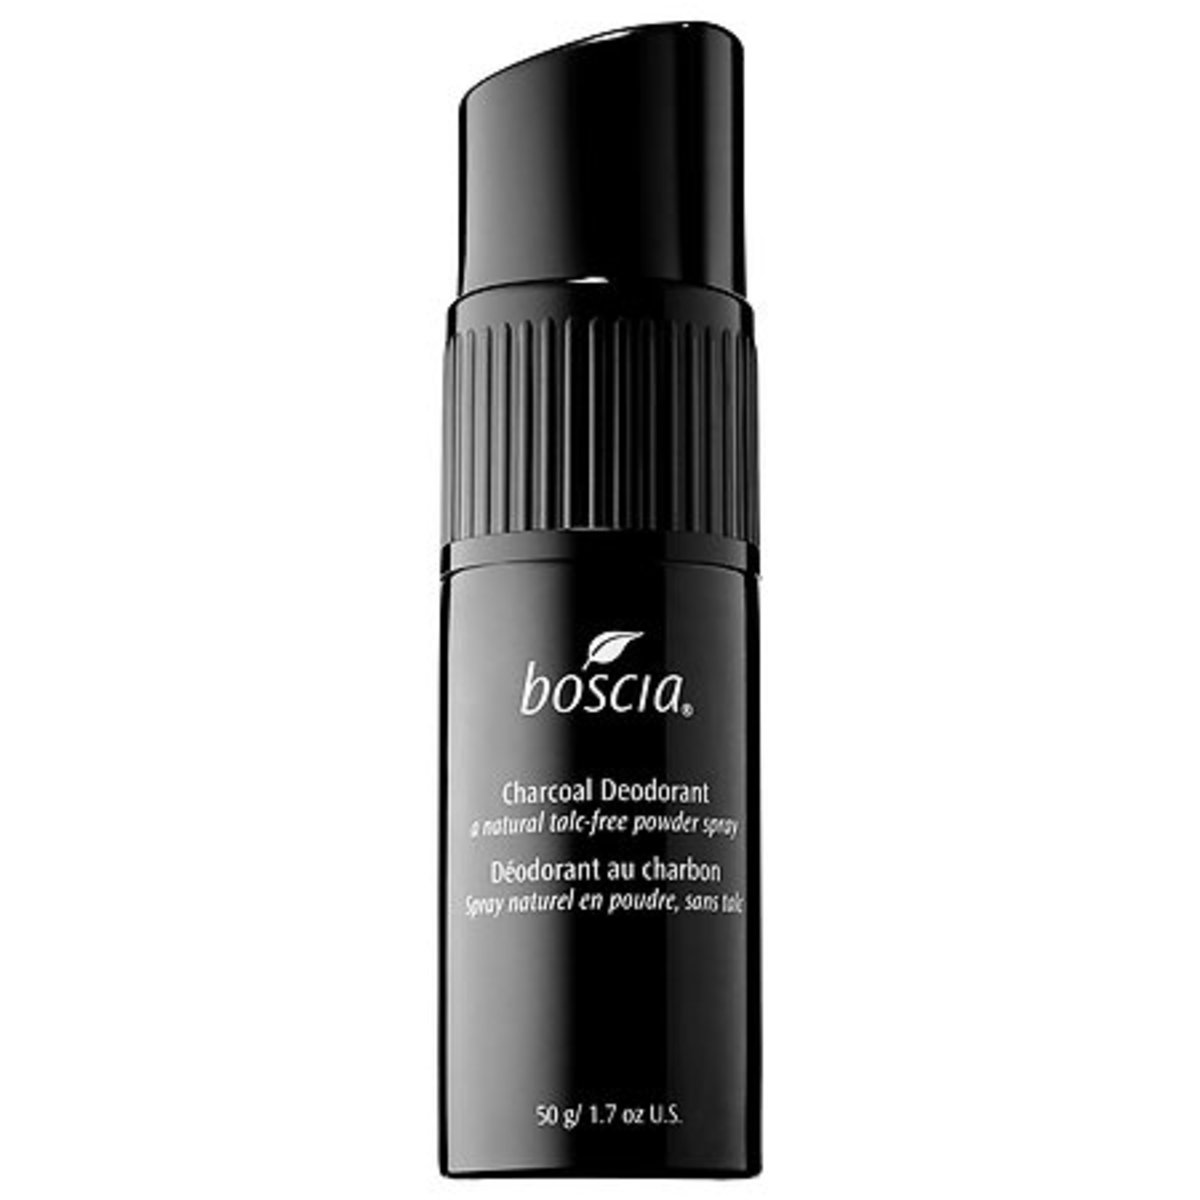 Boscia Charcoal Deodorant, $20, available at Sephora.